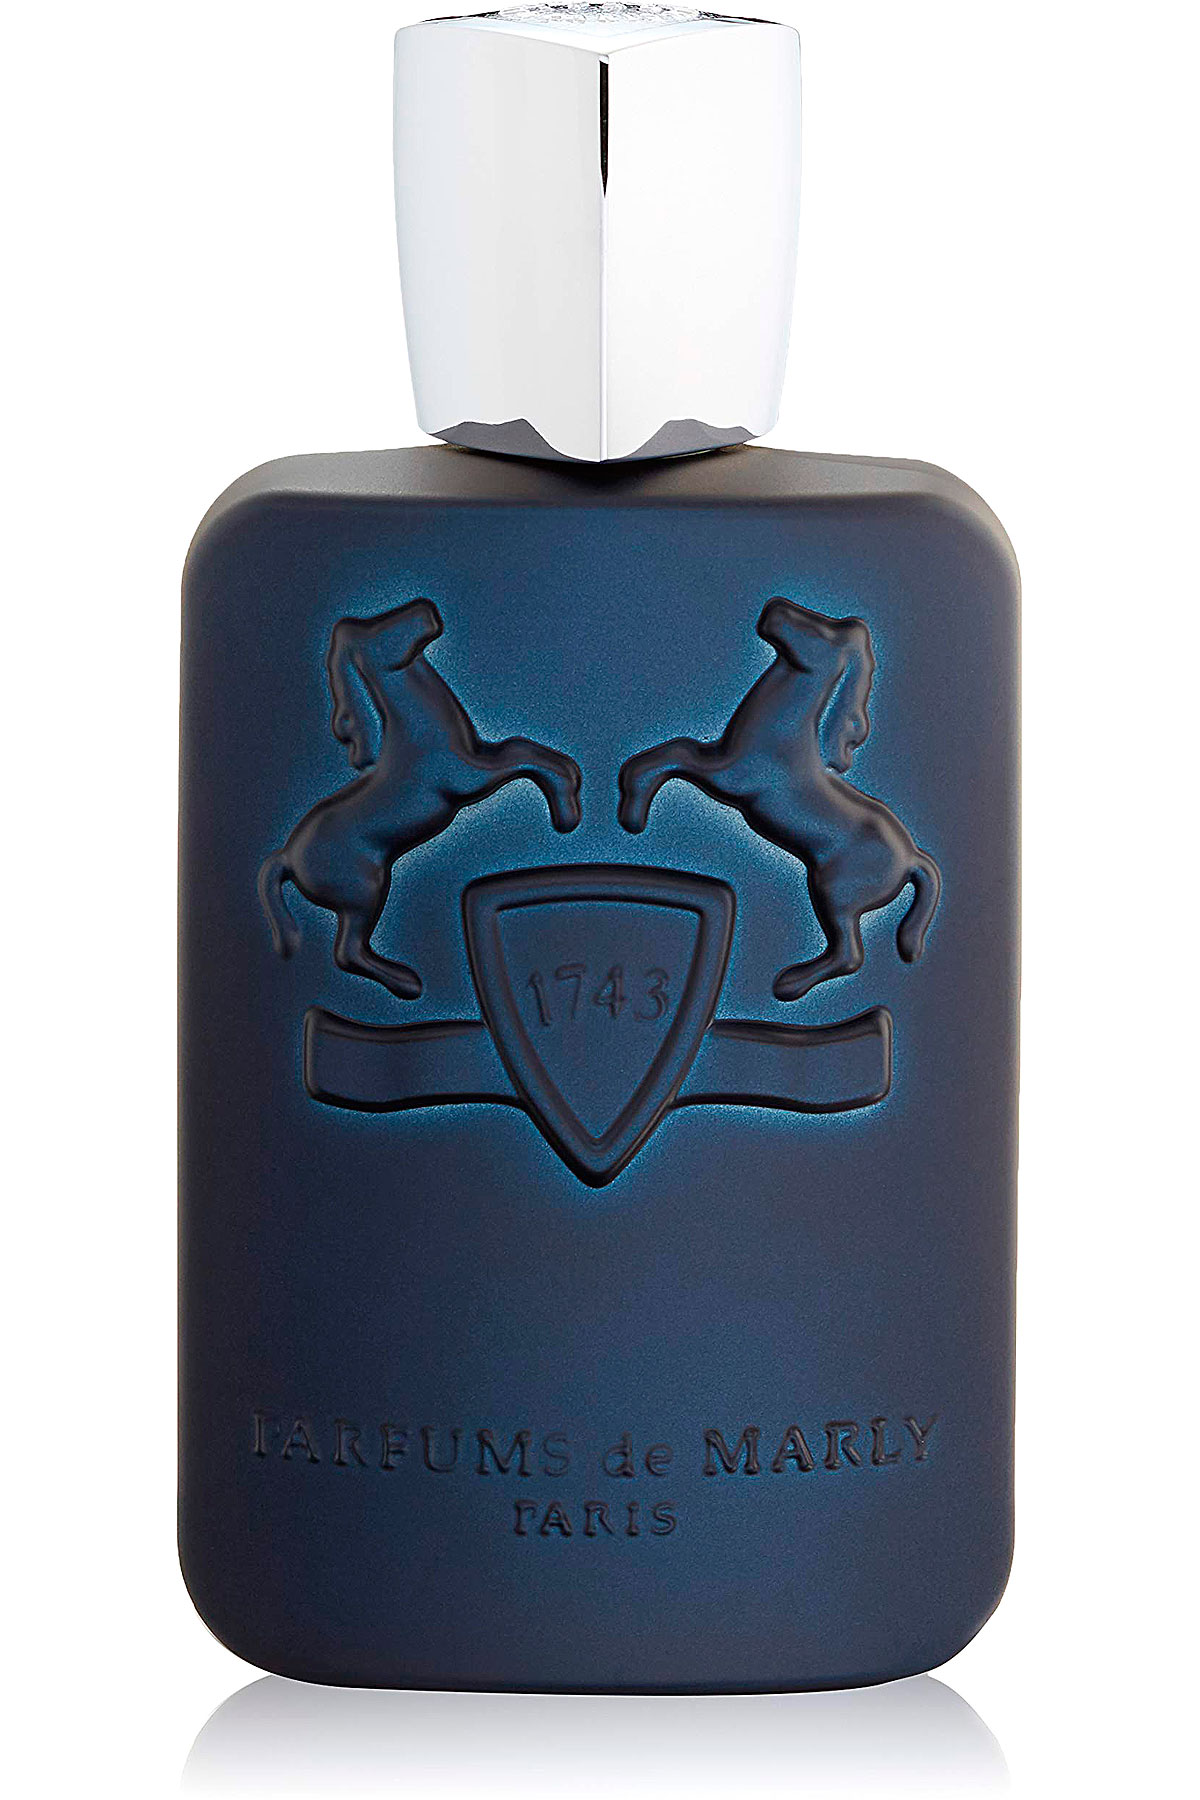 Parfums de Marly Fragrances for Men, Layton - Eau De Parfum - 75-125 Ml, 2019, 75 ml 125 ml